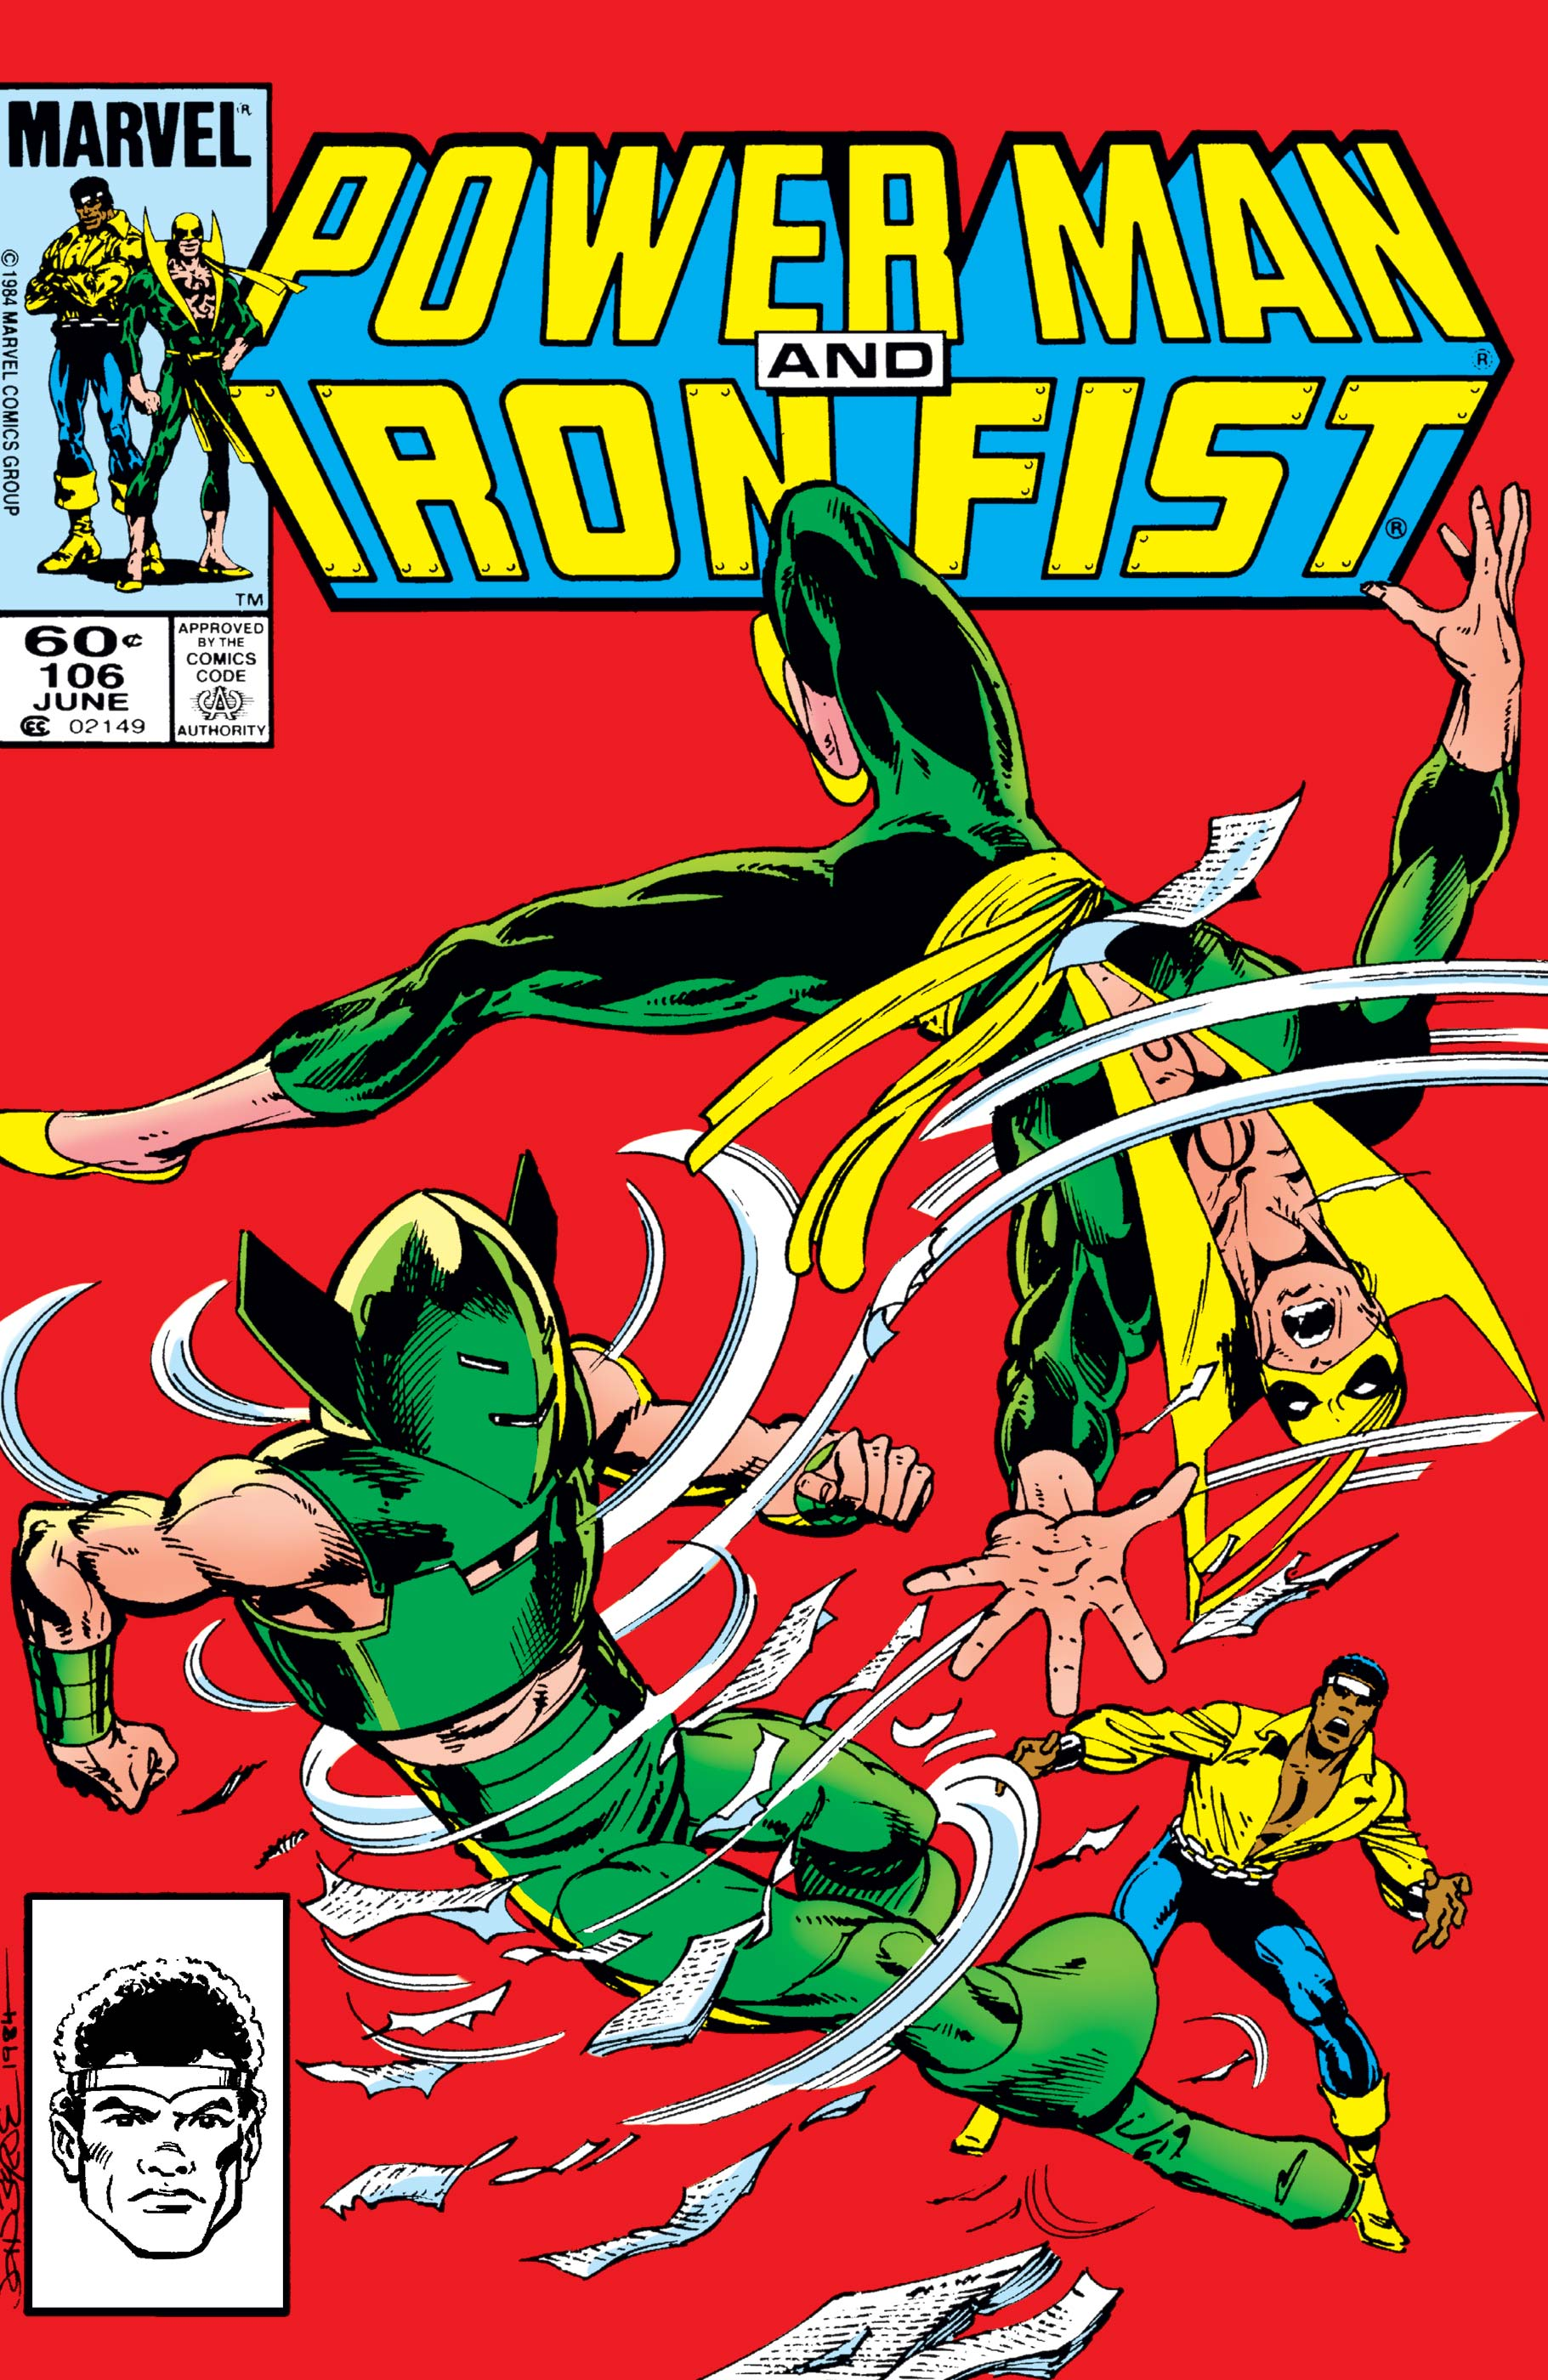 Power Man and Iron Fist (1978) #106